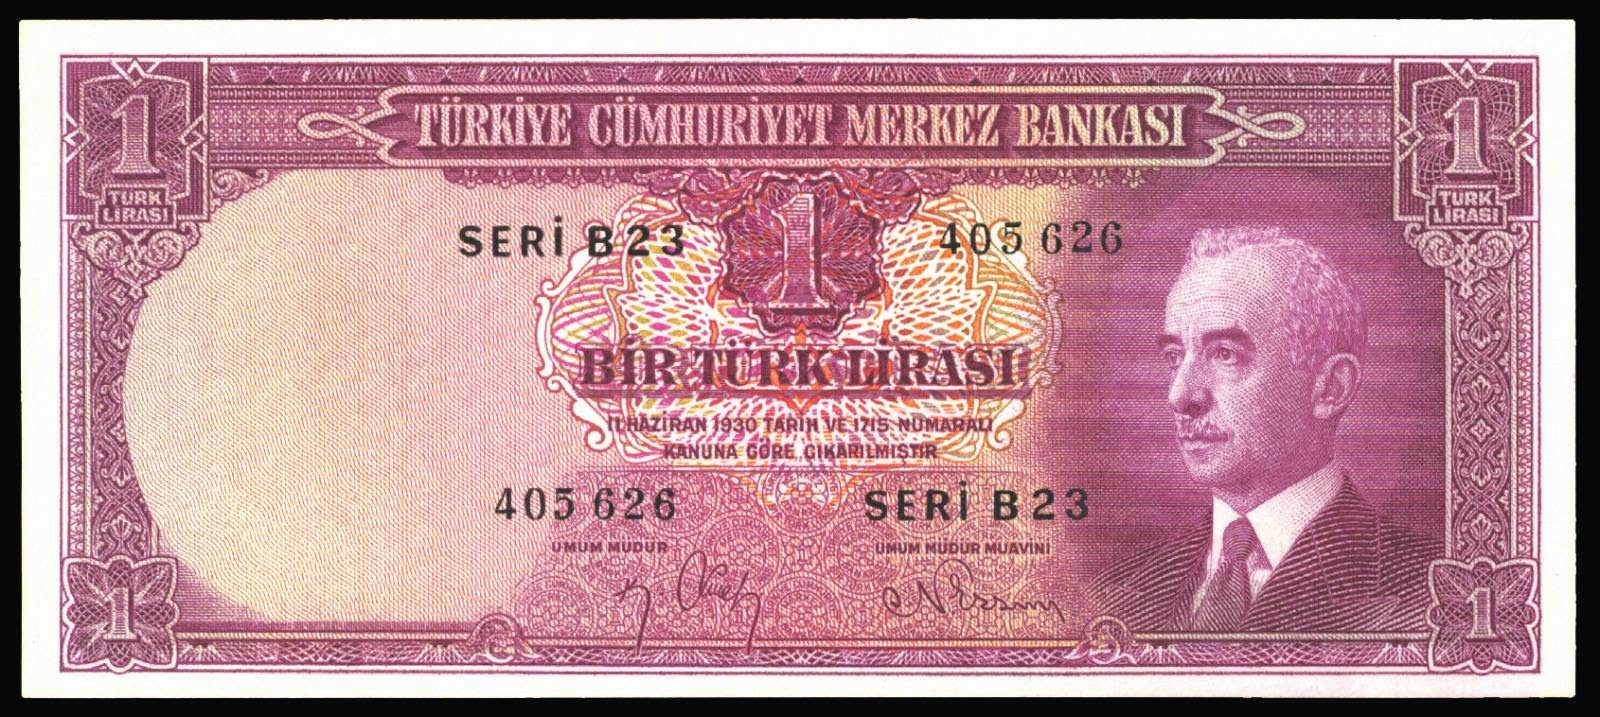 Turkey currency 1 Turkish Lira note 1930 İsmet İnönü